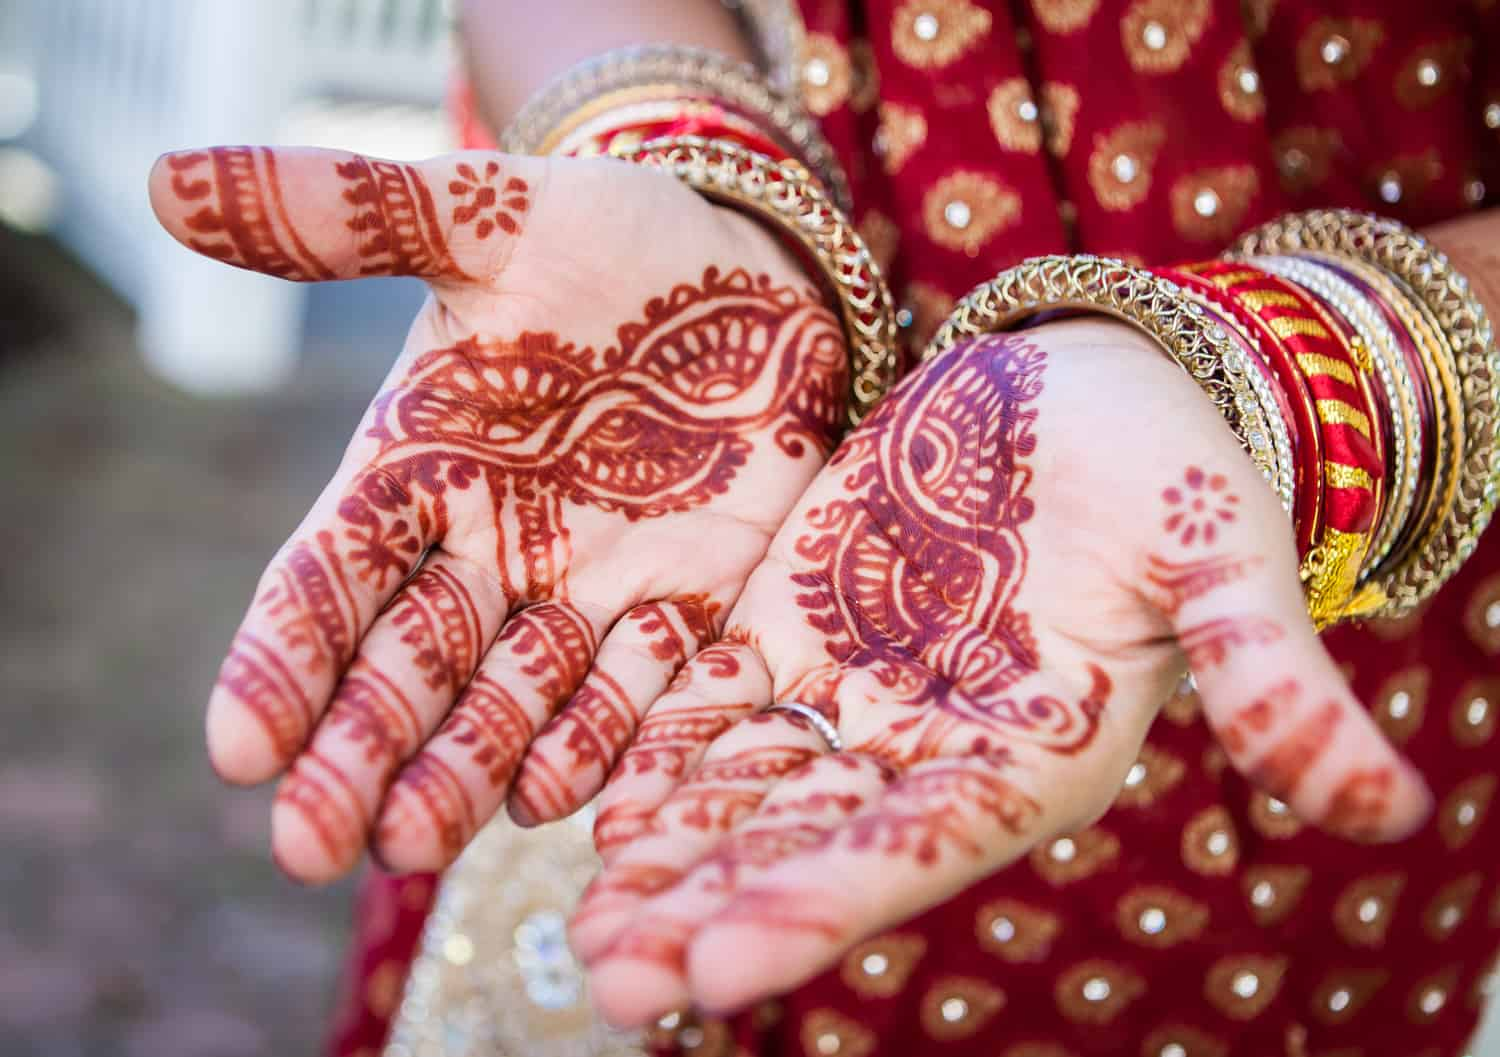 Close up on bride's hands with traditional henna design on skin